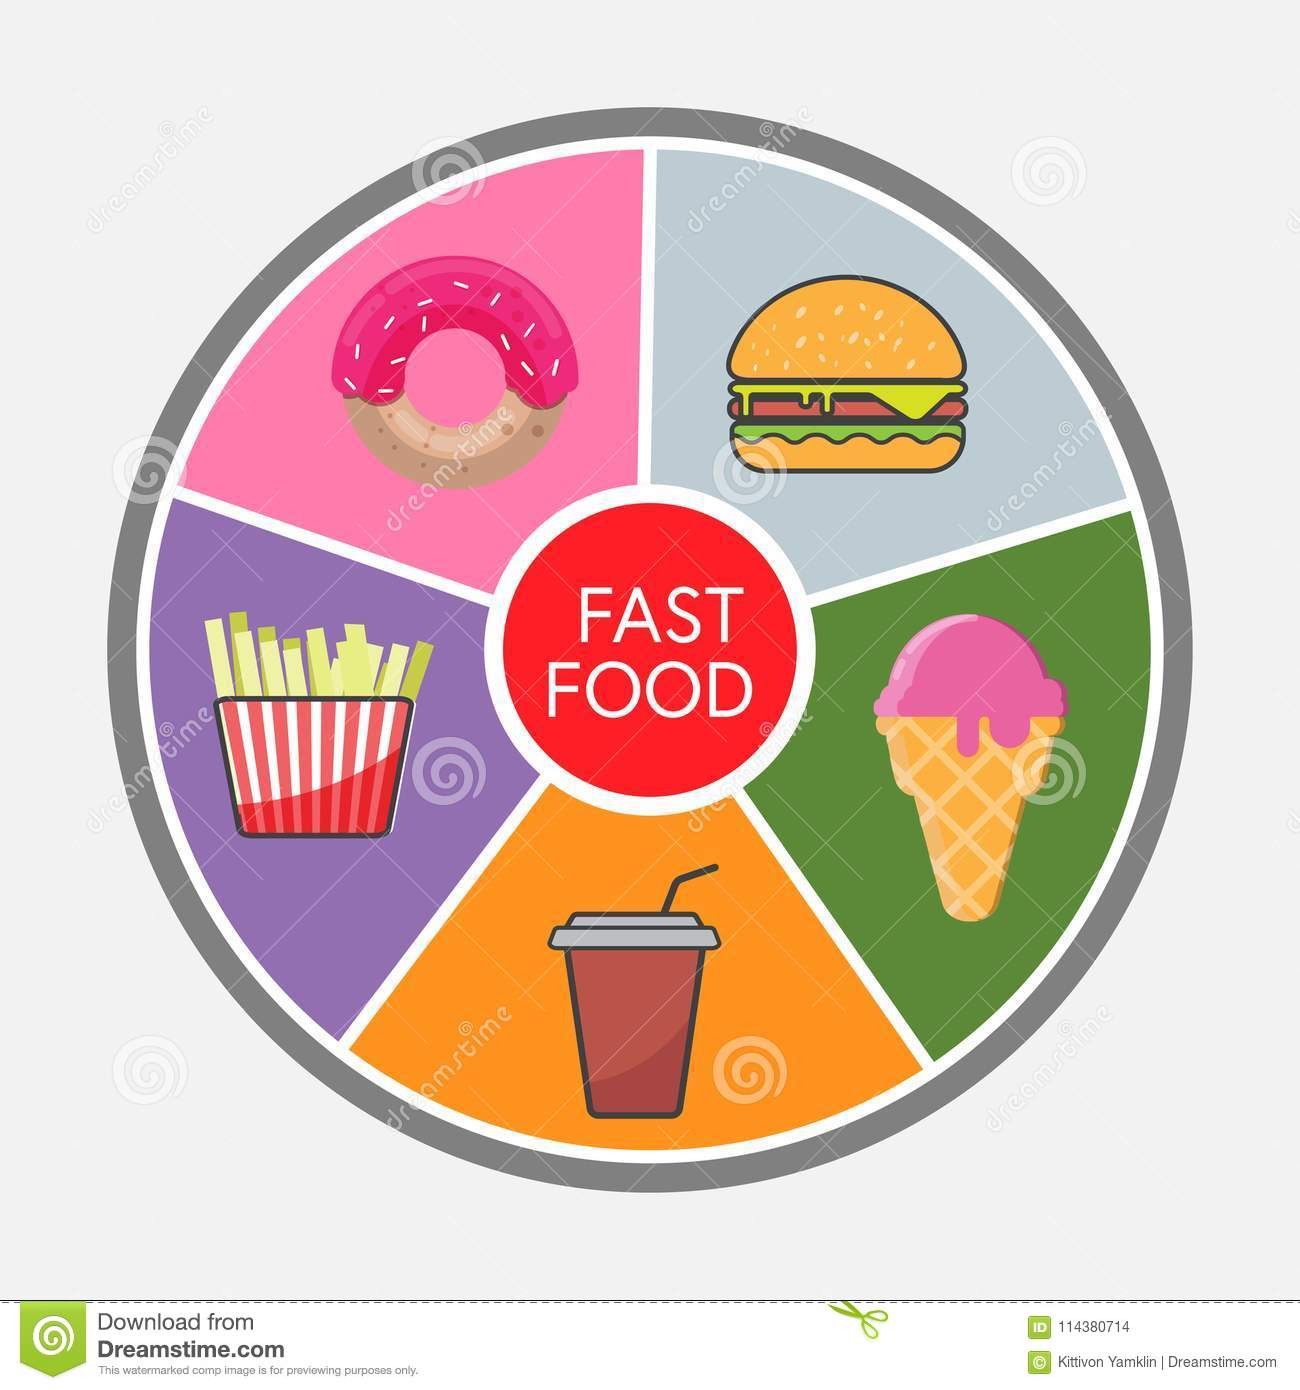 Junk Food Vector Infographic  Stock Vector - Illustration of meat